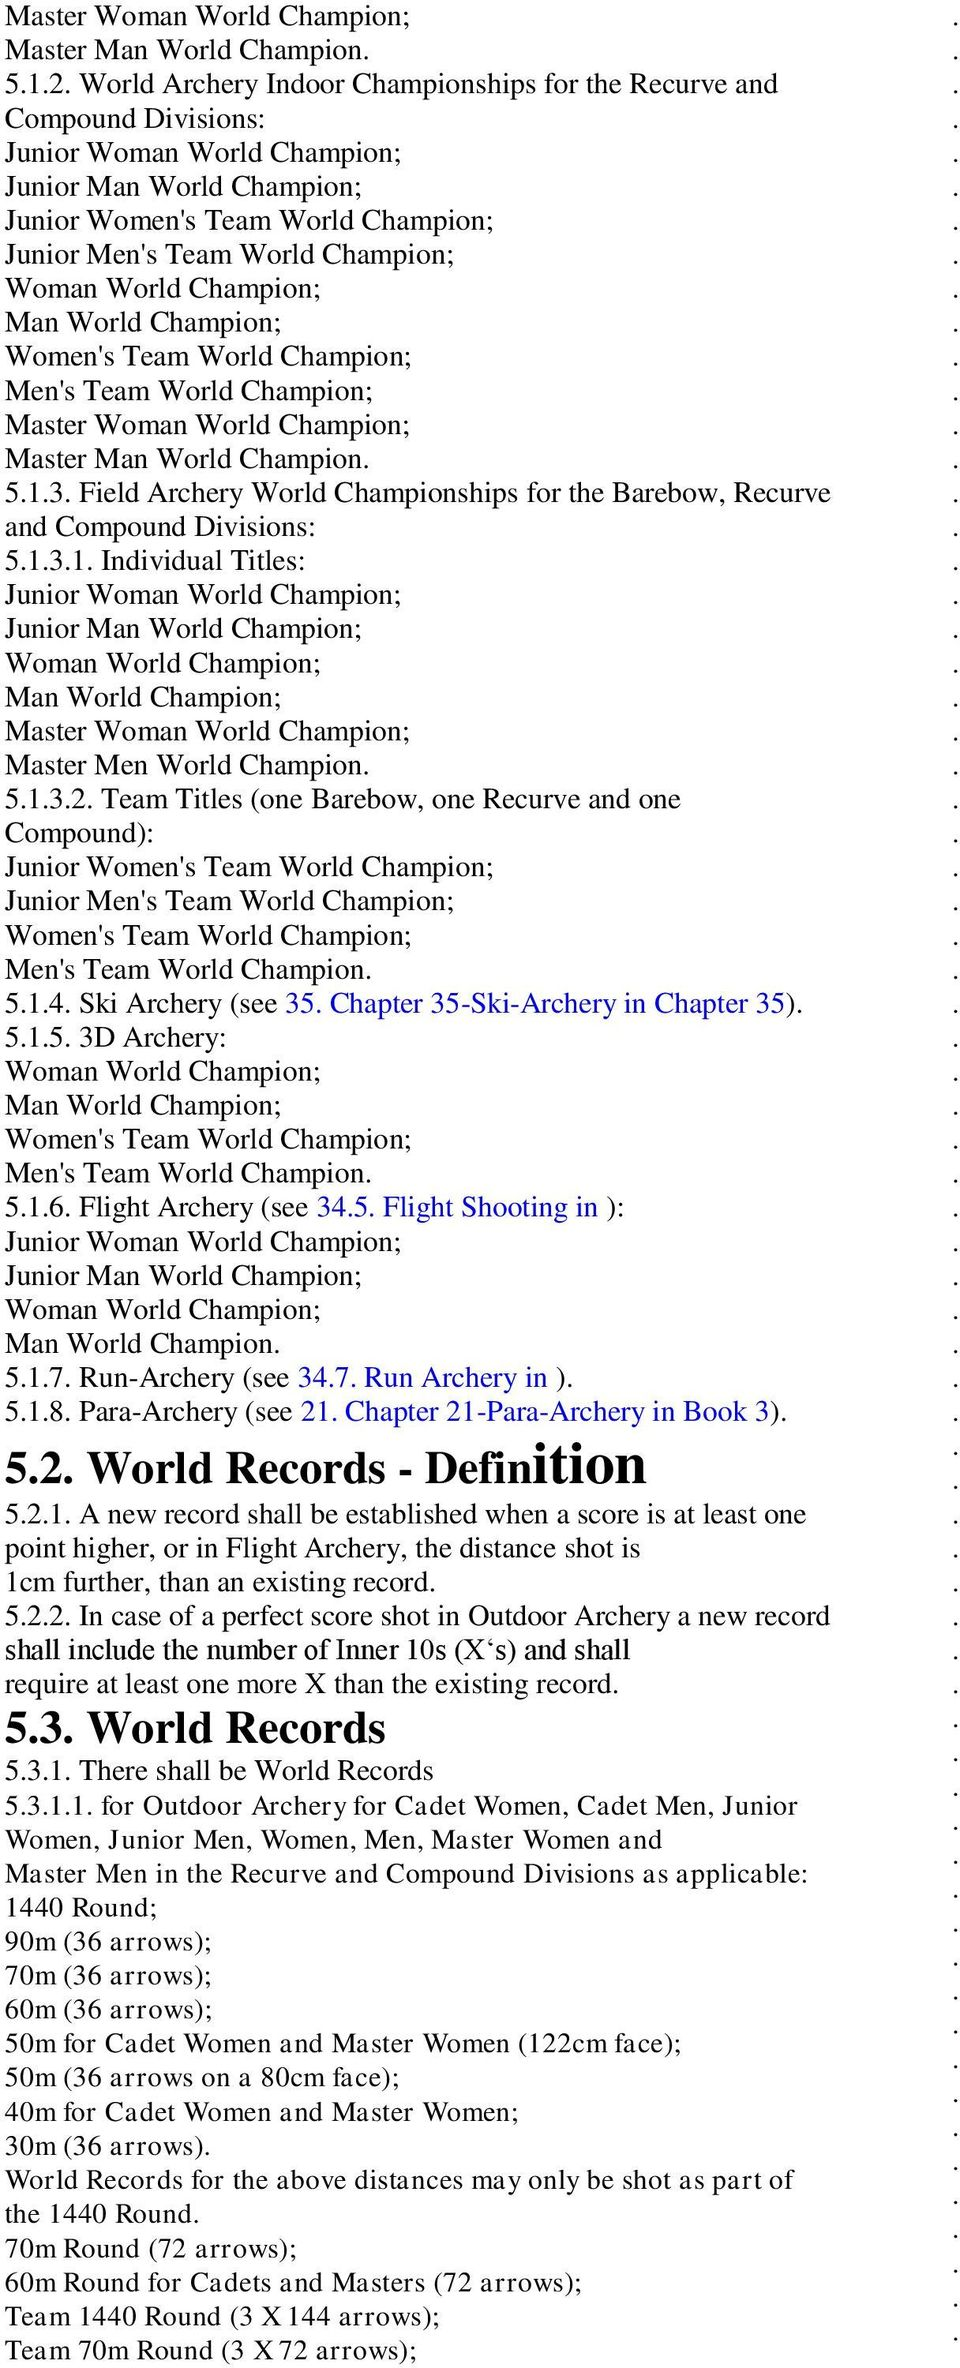 Man World Champion 513 Field Archery World Championships for the Barebow, Recurve and Compound Divisions: 5131 Individual Titles: Junior Woman World Champion; Junior Man World Champion; Woman World